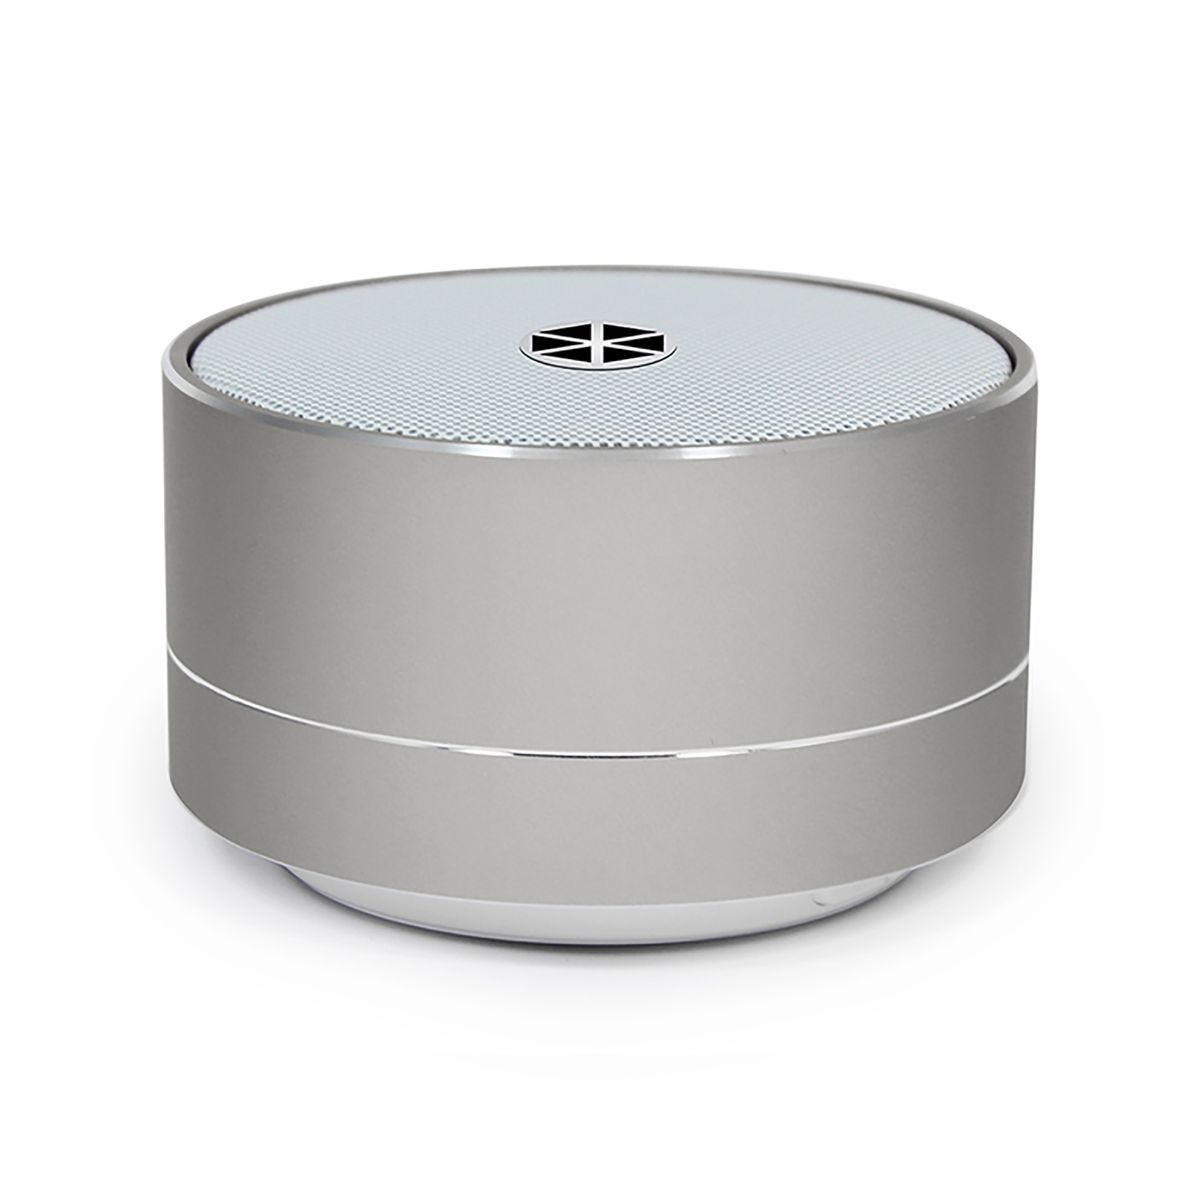 Image of Cocoon Bluetooth Speaker, Silver